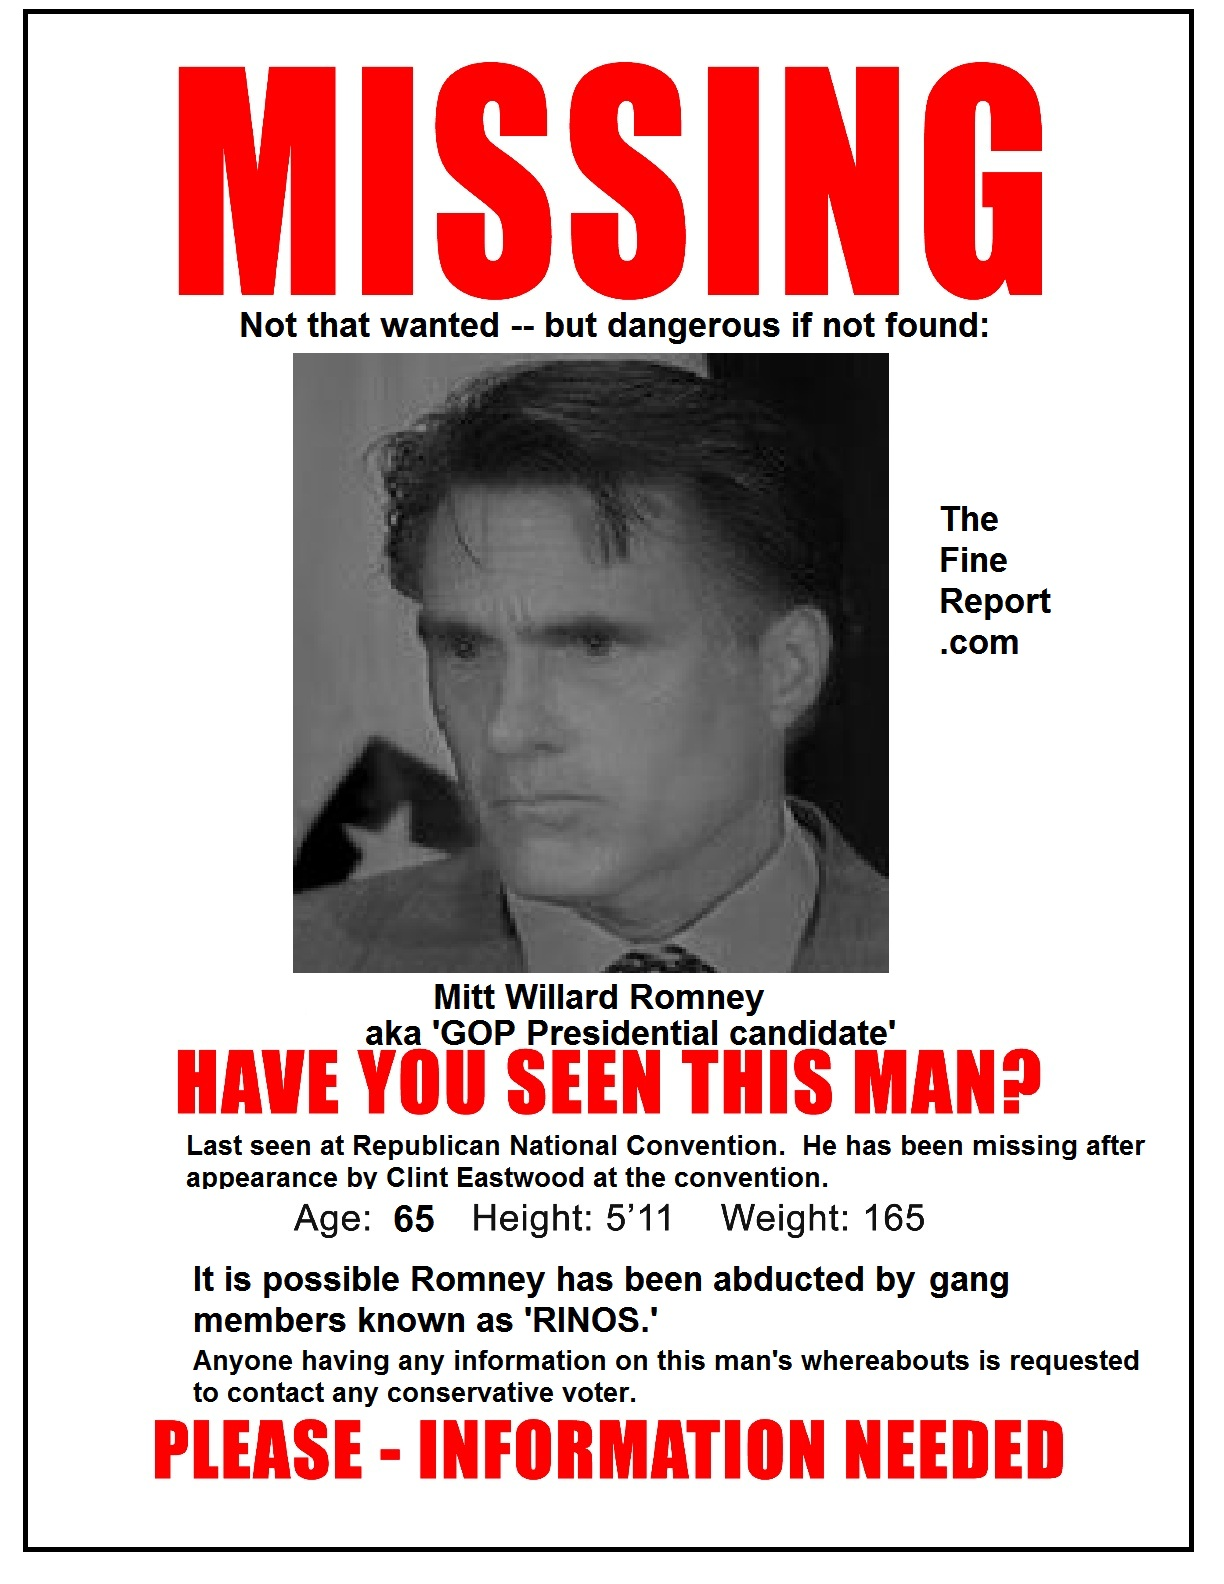 MISSING: Mitt Romney  Funny Missing Person Poster